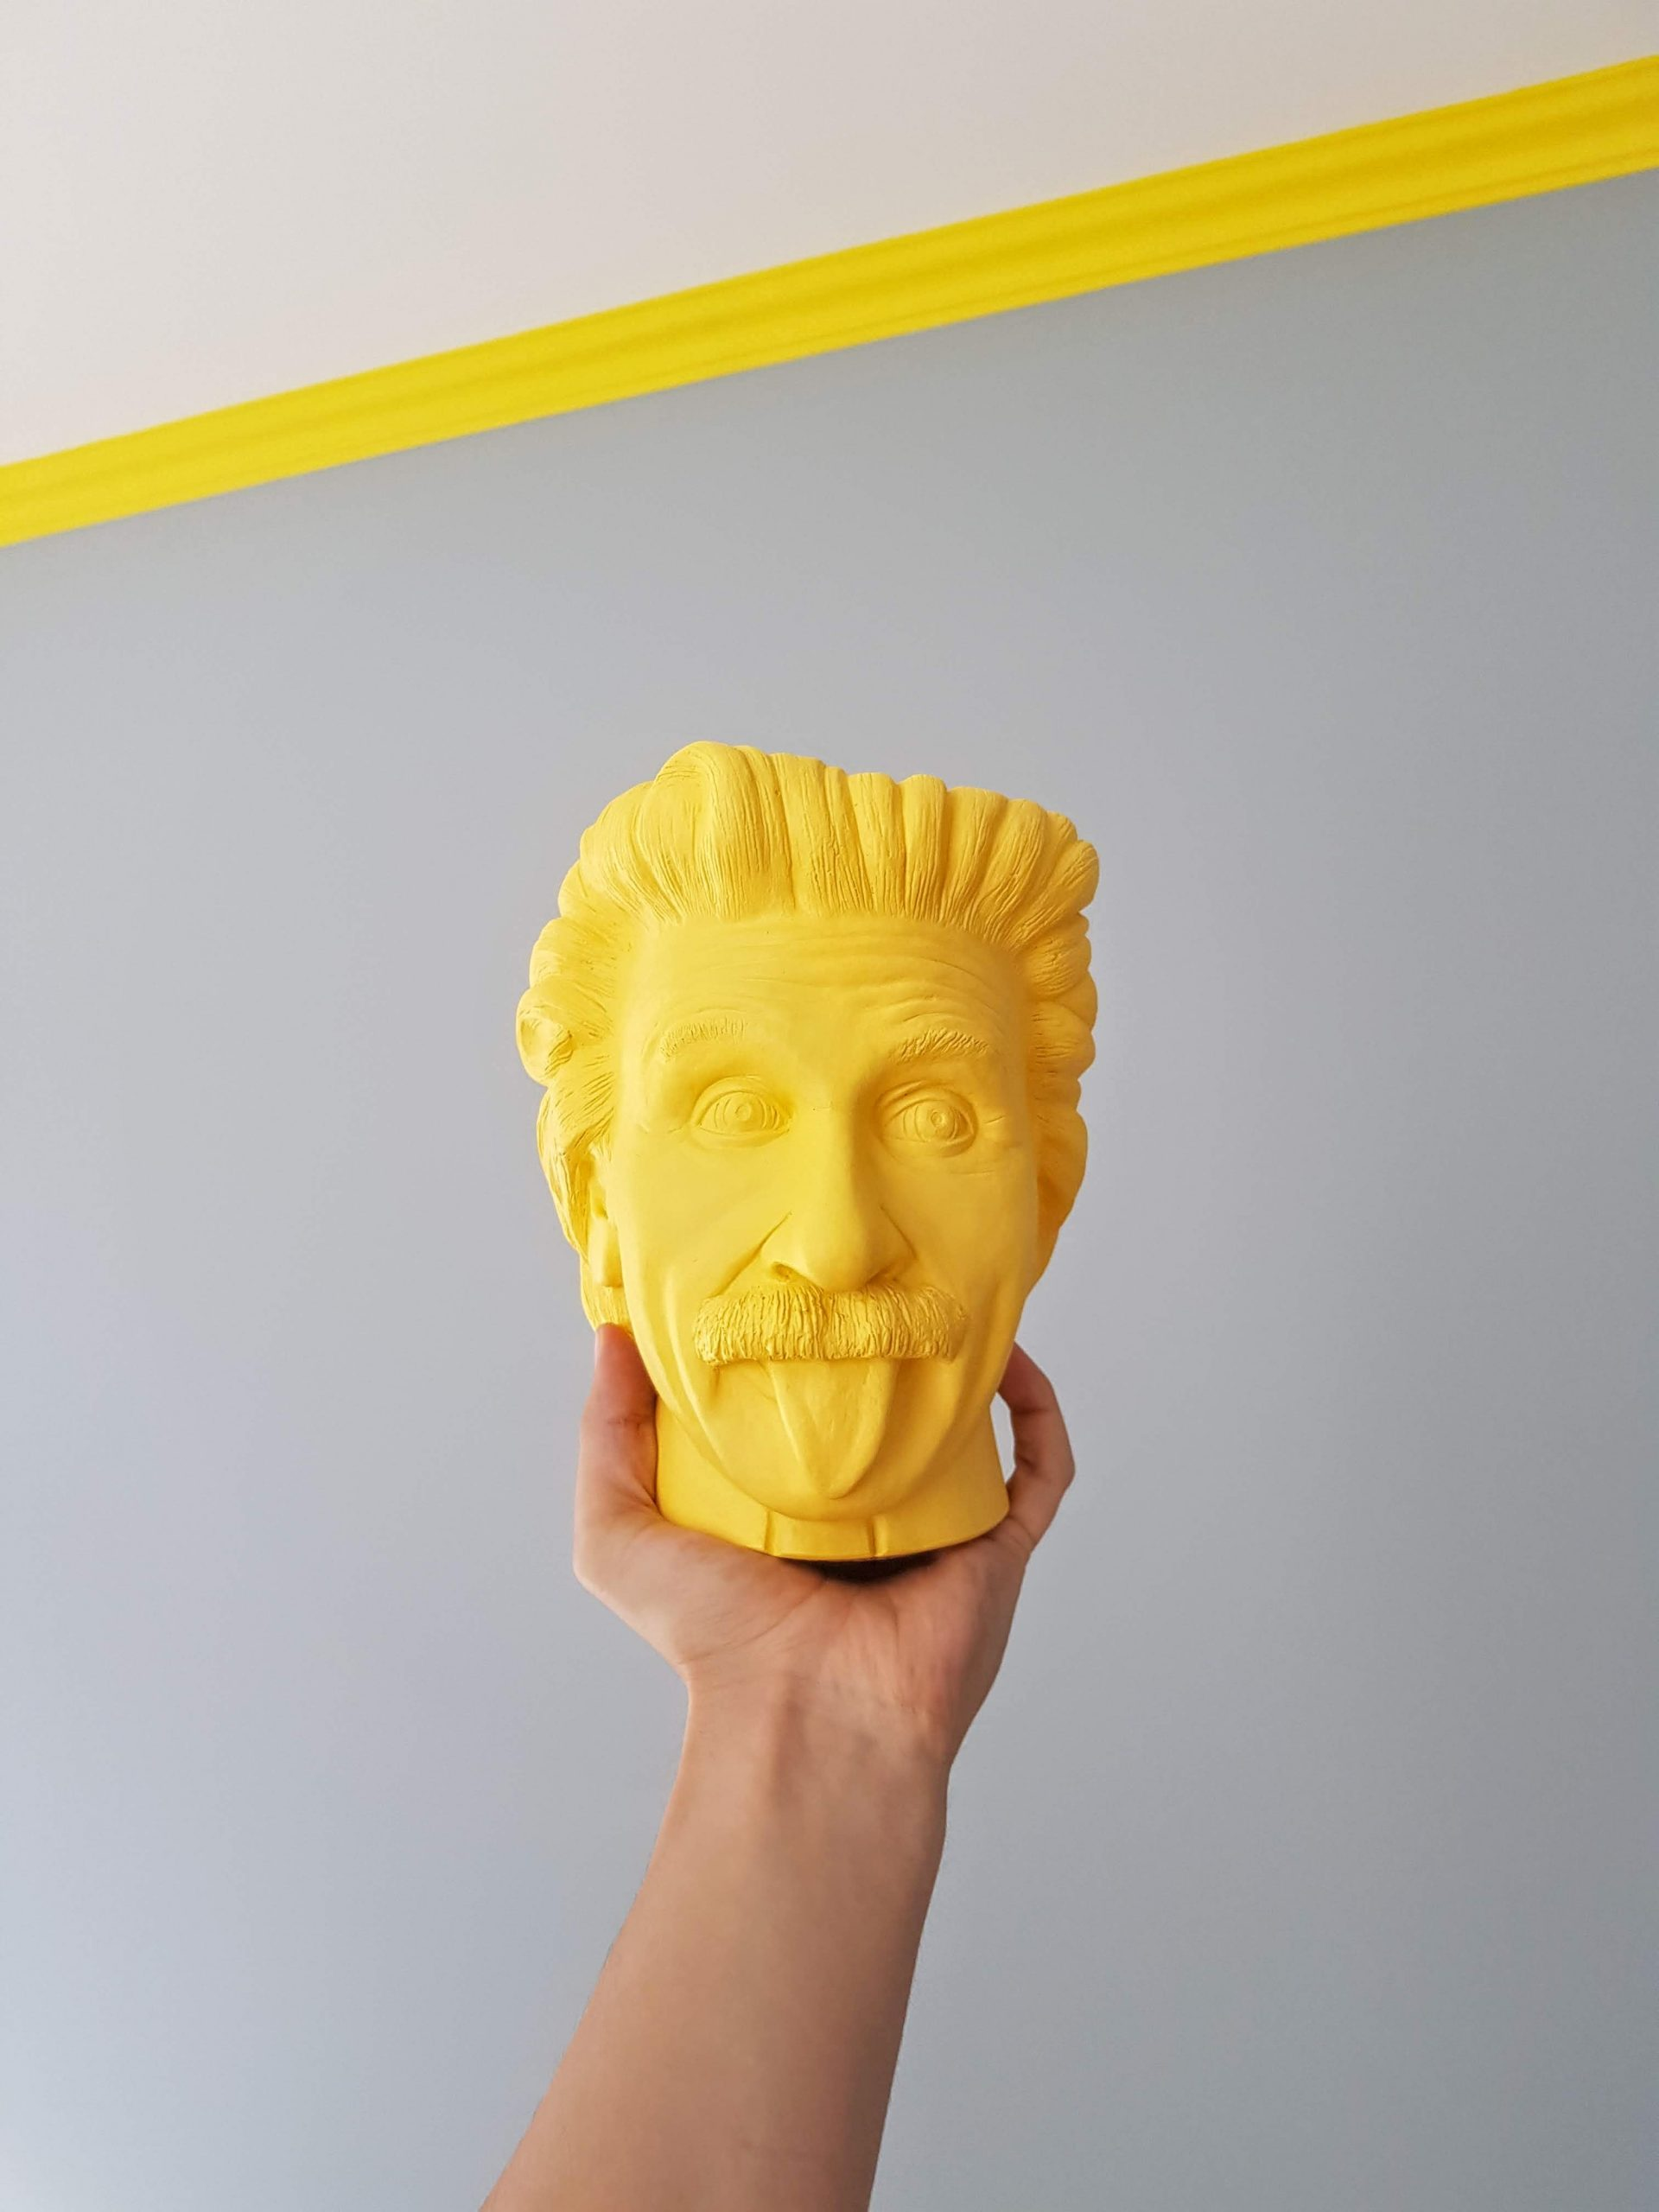 """a hand holding a """"toy"""" yellow head of Einstein sticking his tongue out"""